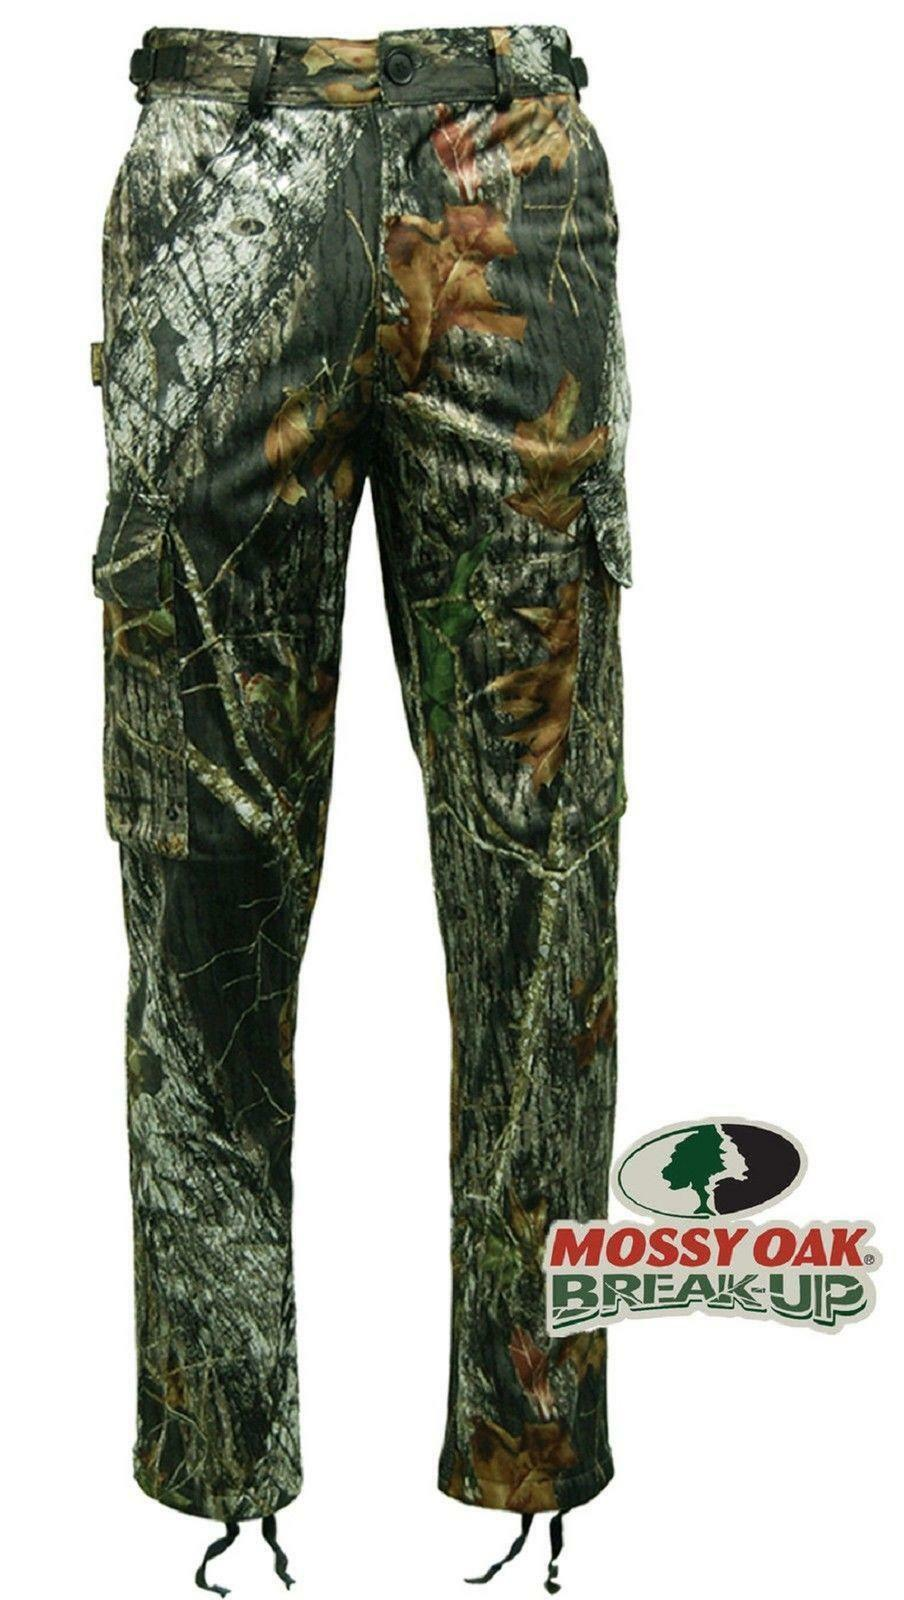 Stormkloth Mens Recon Mossy Oak Breakup Trouser Camo Hunting   Shotting